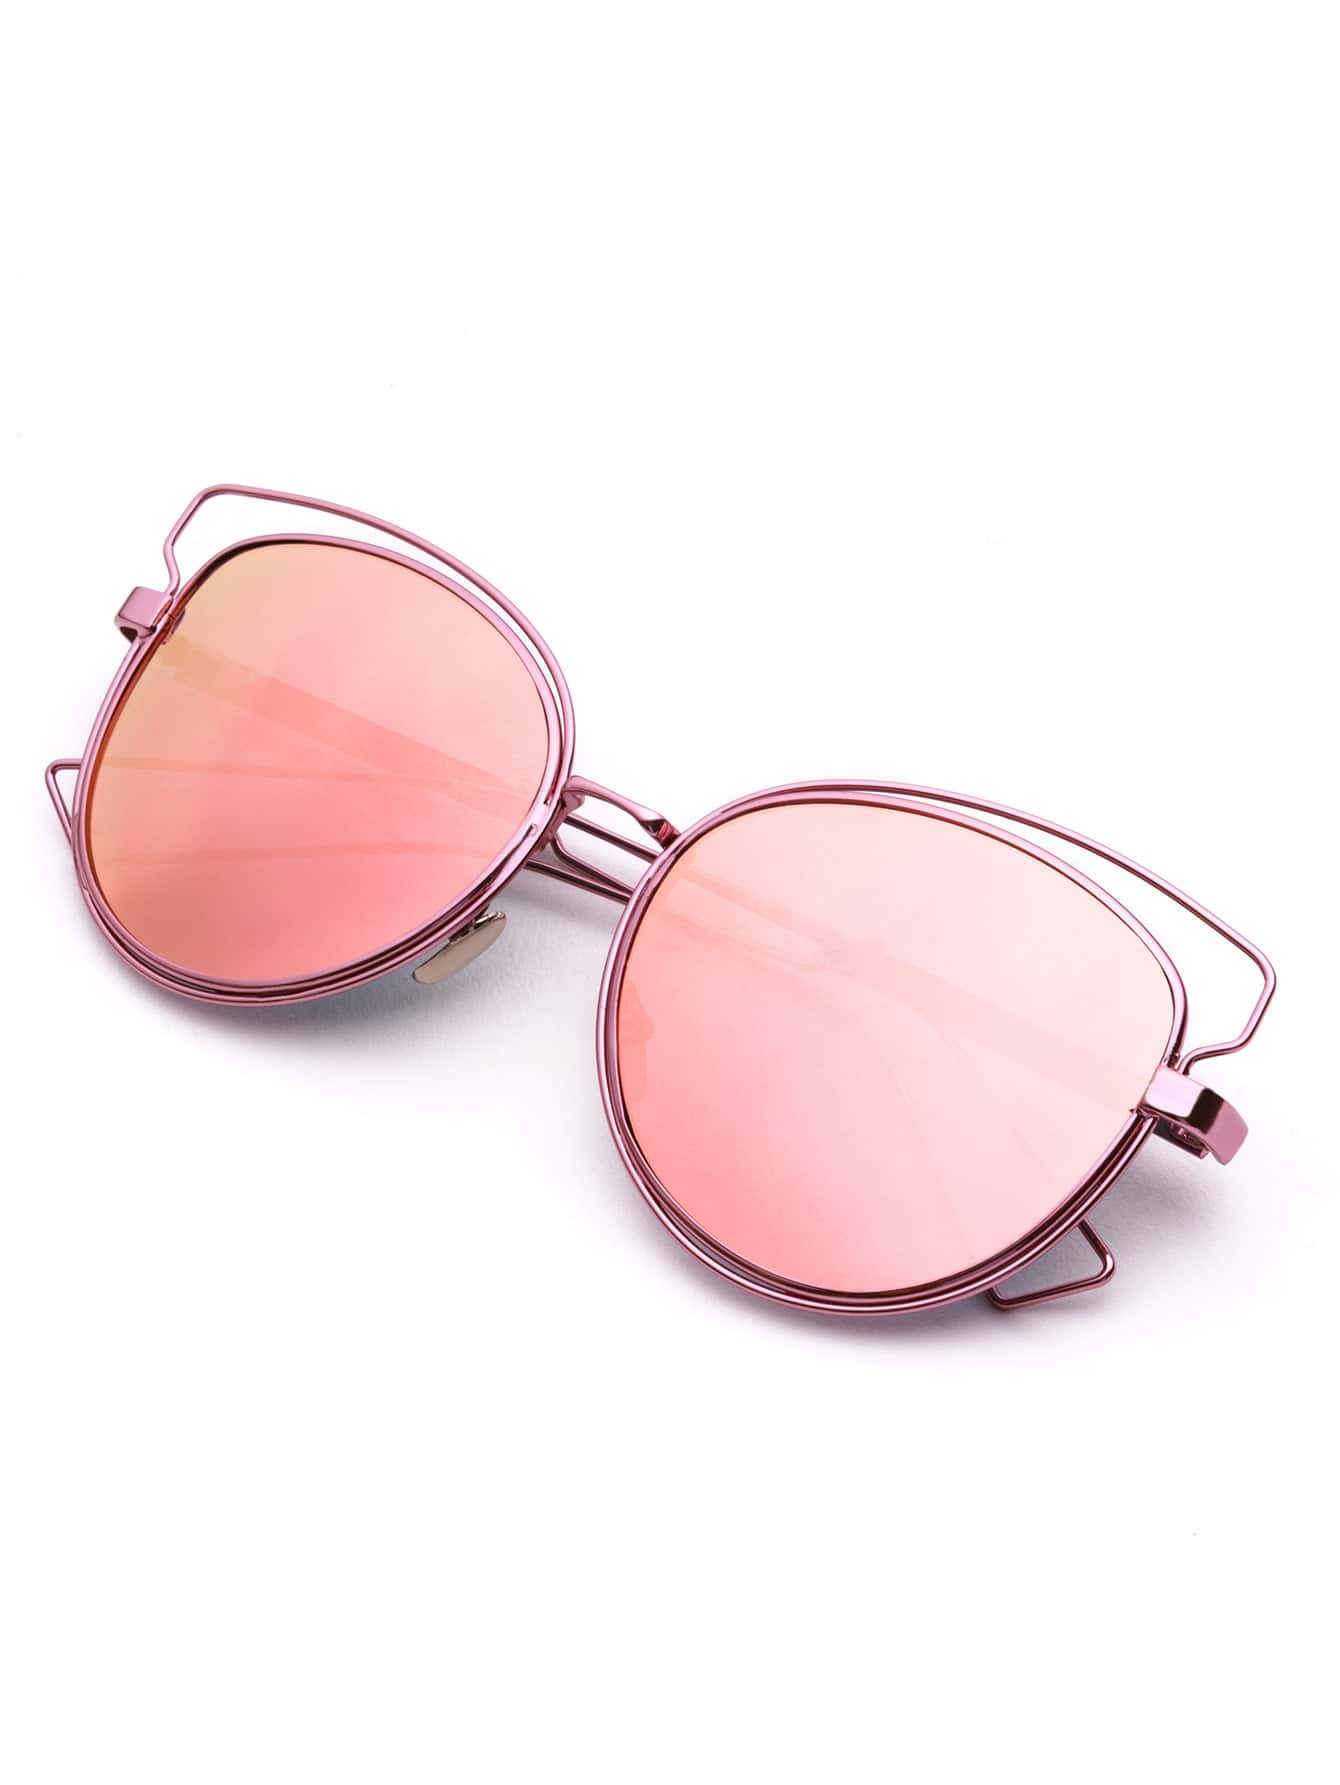 Rose Gold Frame Pink Lens Hollow Out Sunglasses -SheIn ...